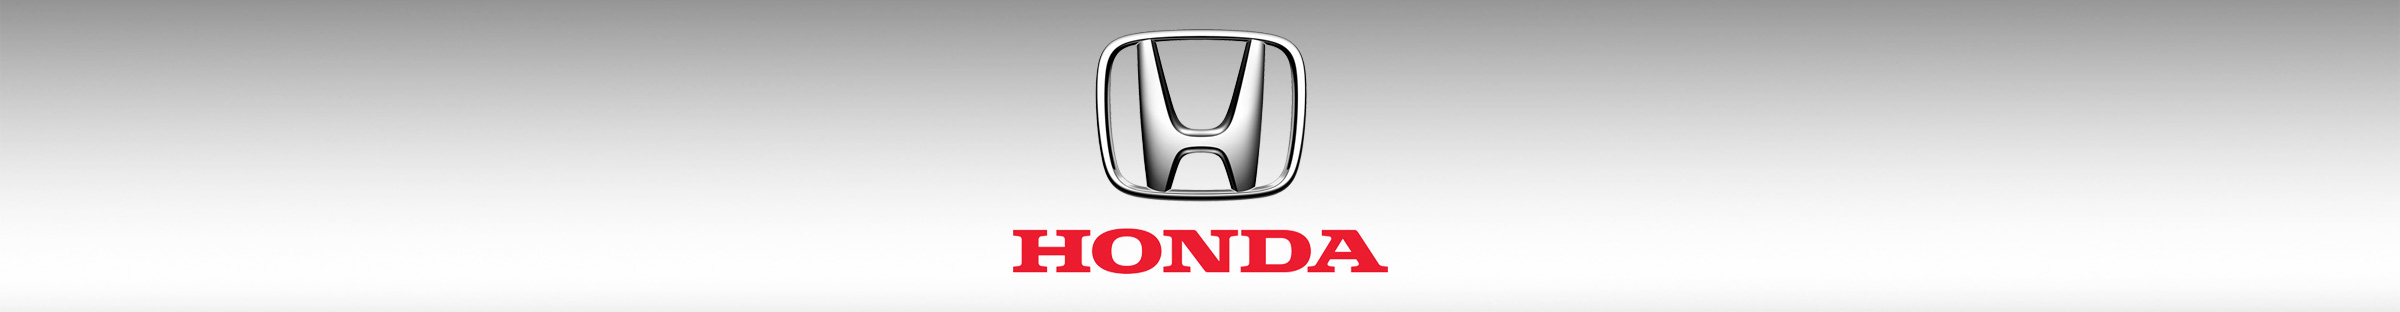 Some of the Featured Models from Honda include the Civic, Pilot and Ridgeline are now at the 2018 Sacramento International Auto Show.